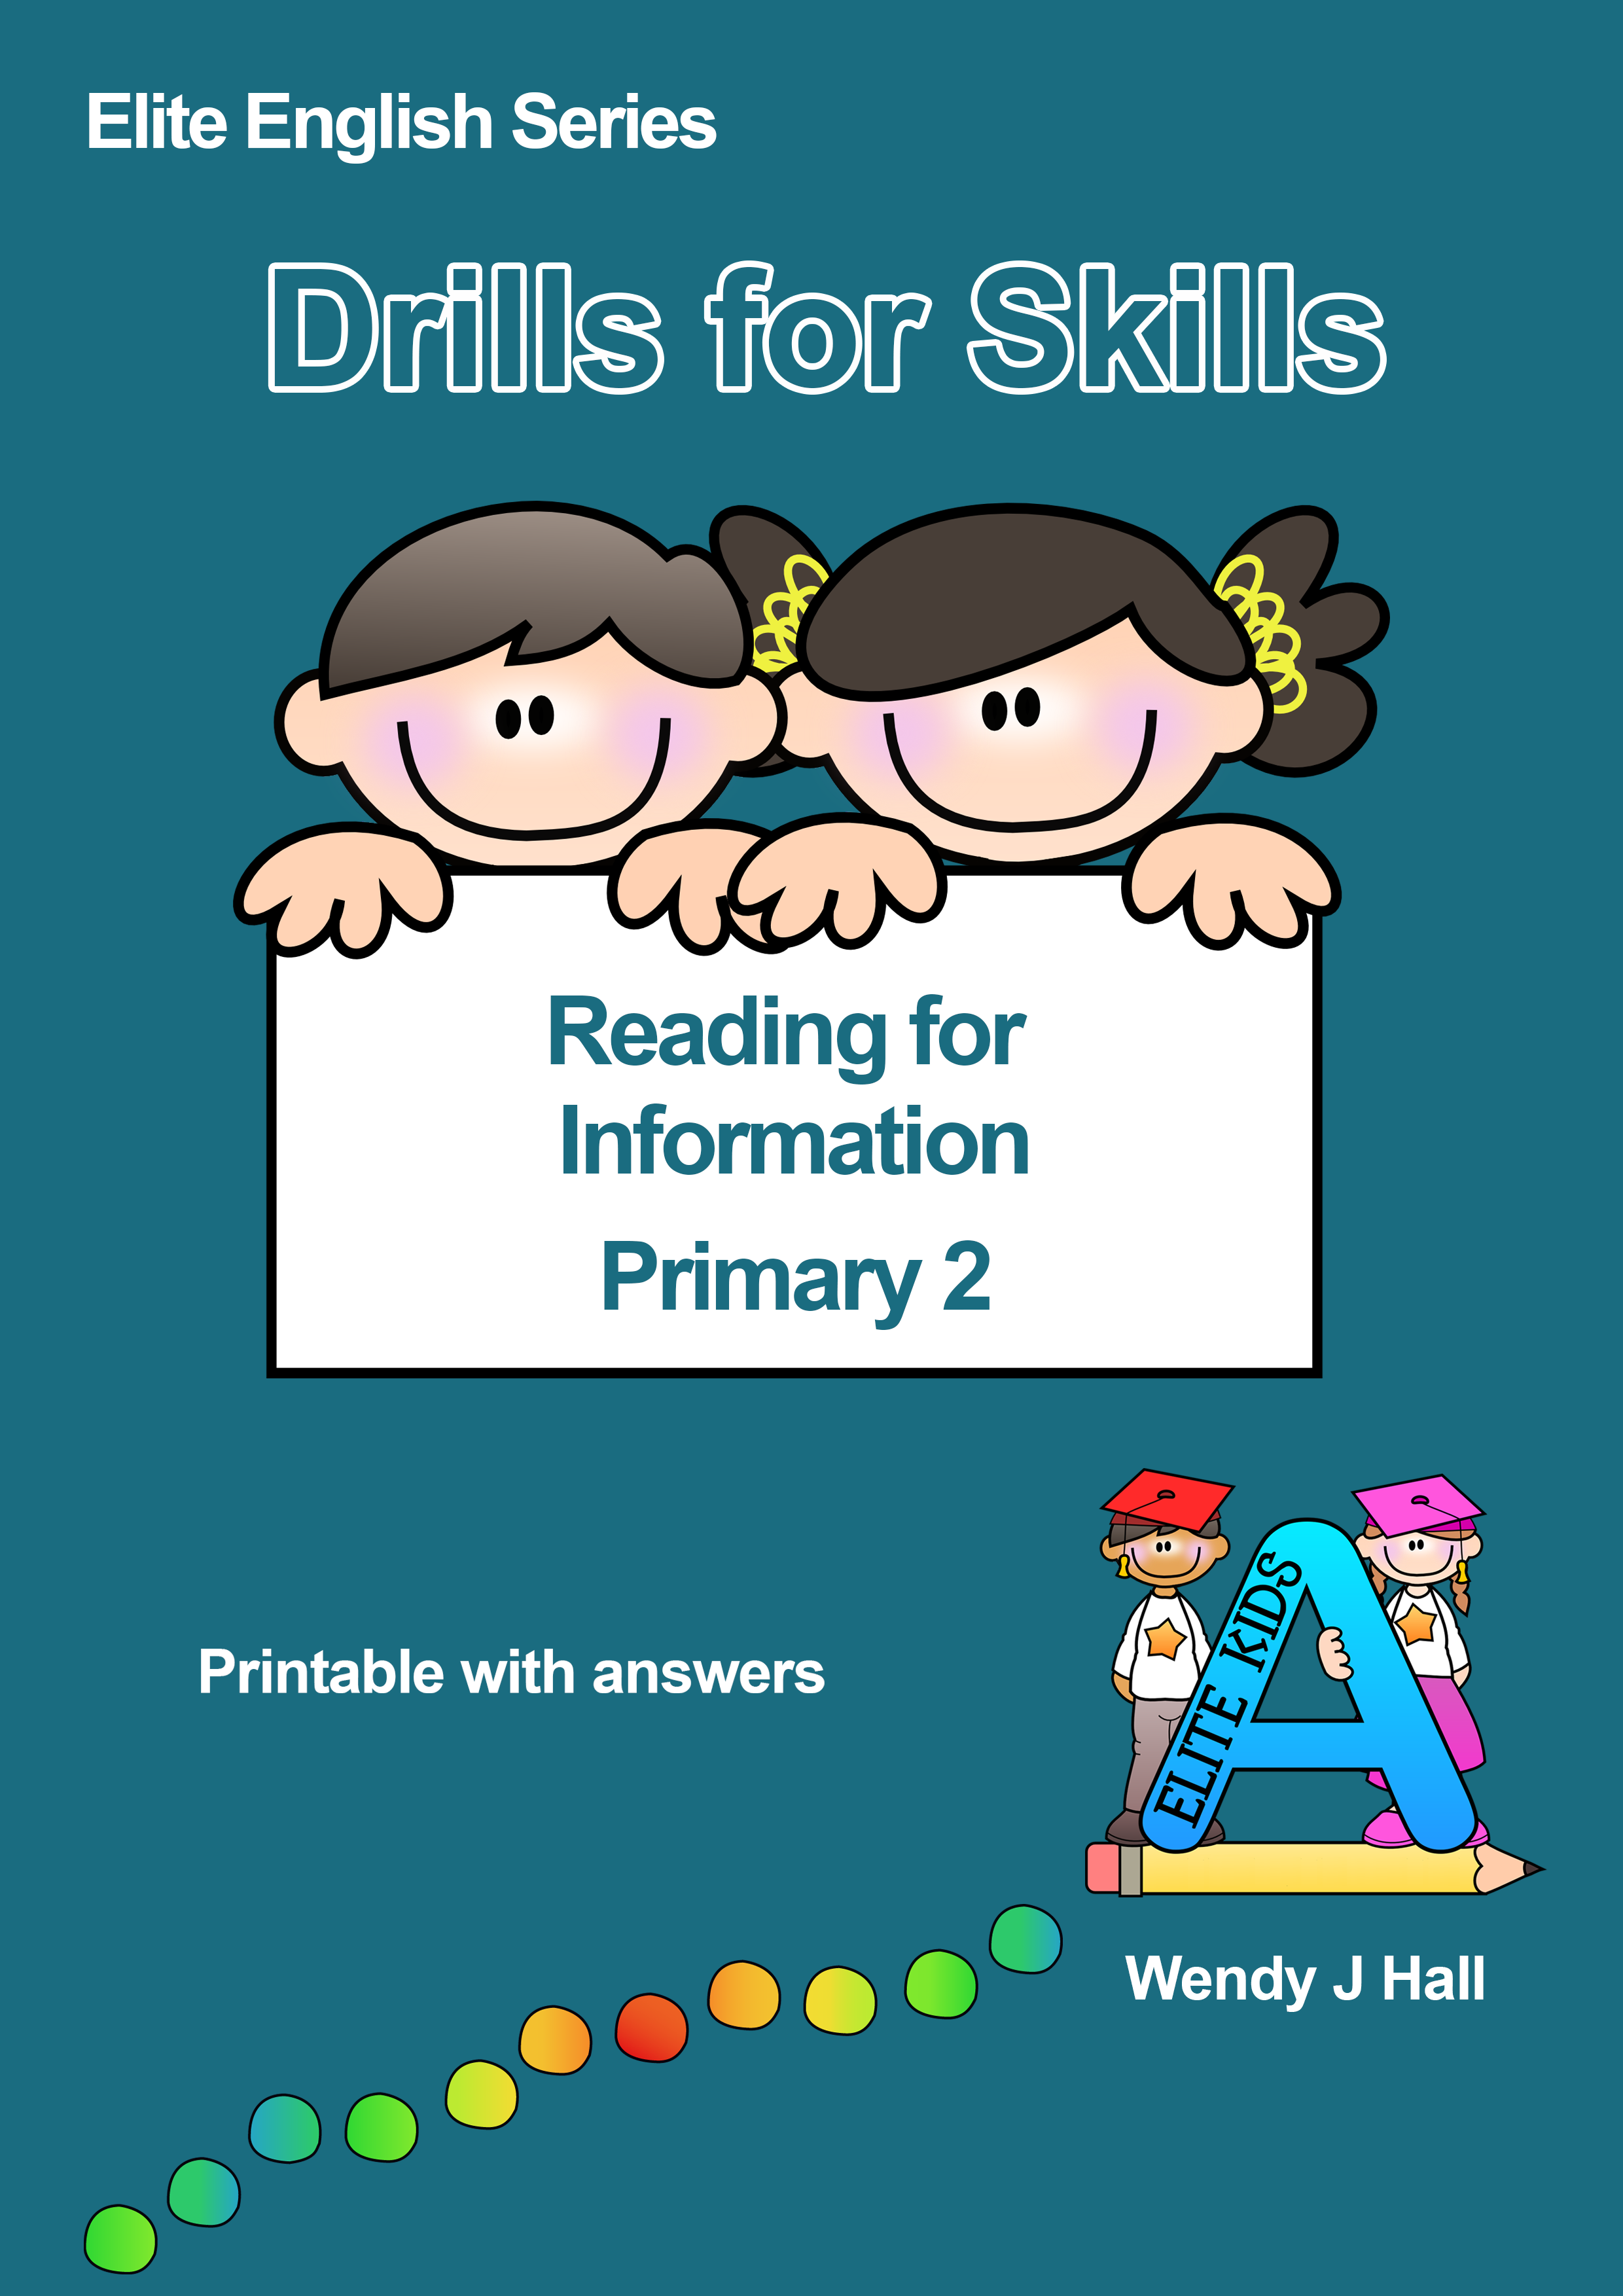 Drills for Skills - Reading for Information | Primary 2